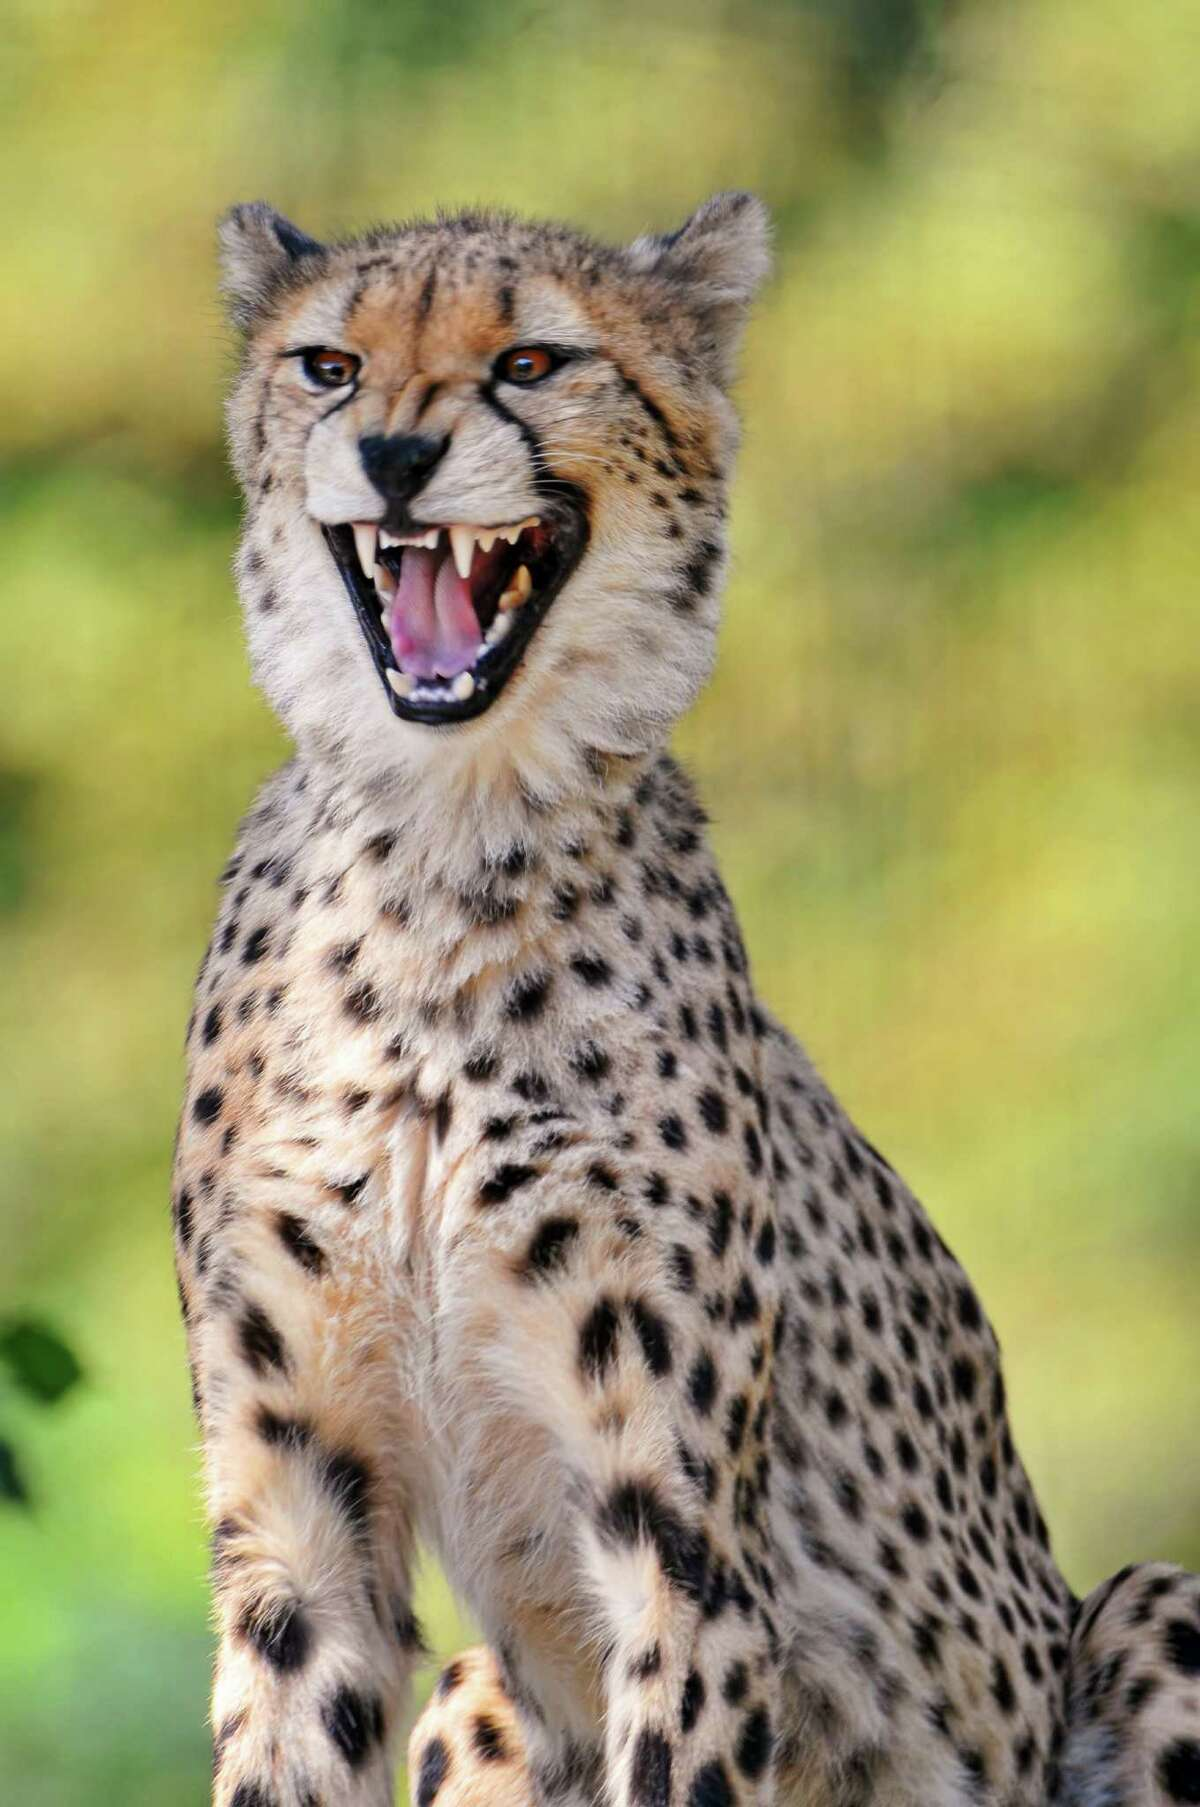 Why is there no gambling in Africa? Because there are too many cheetahs.